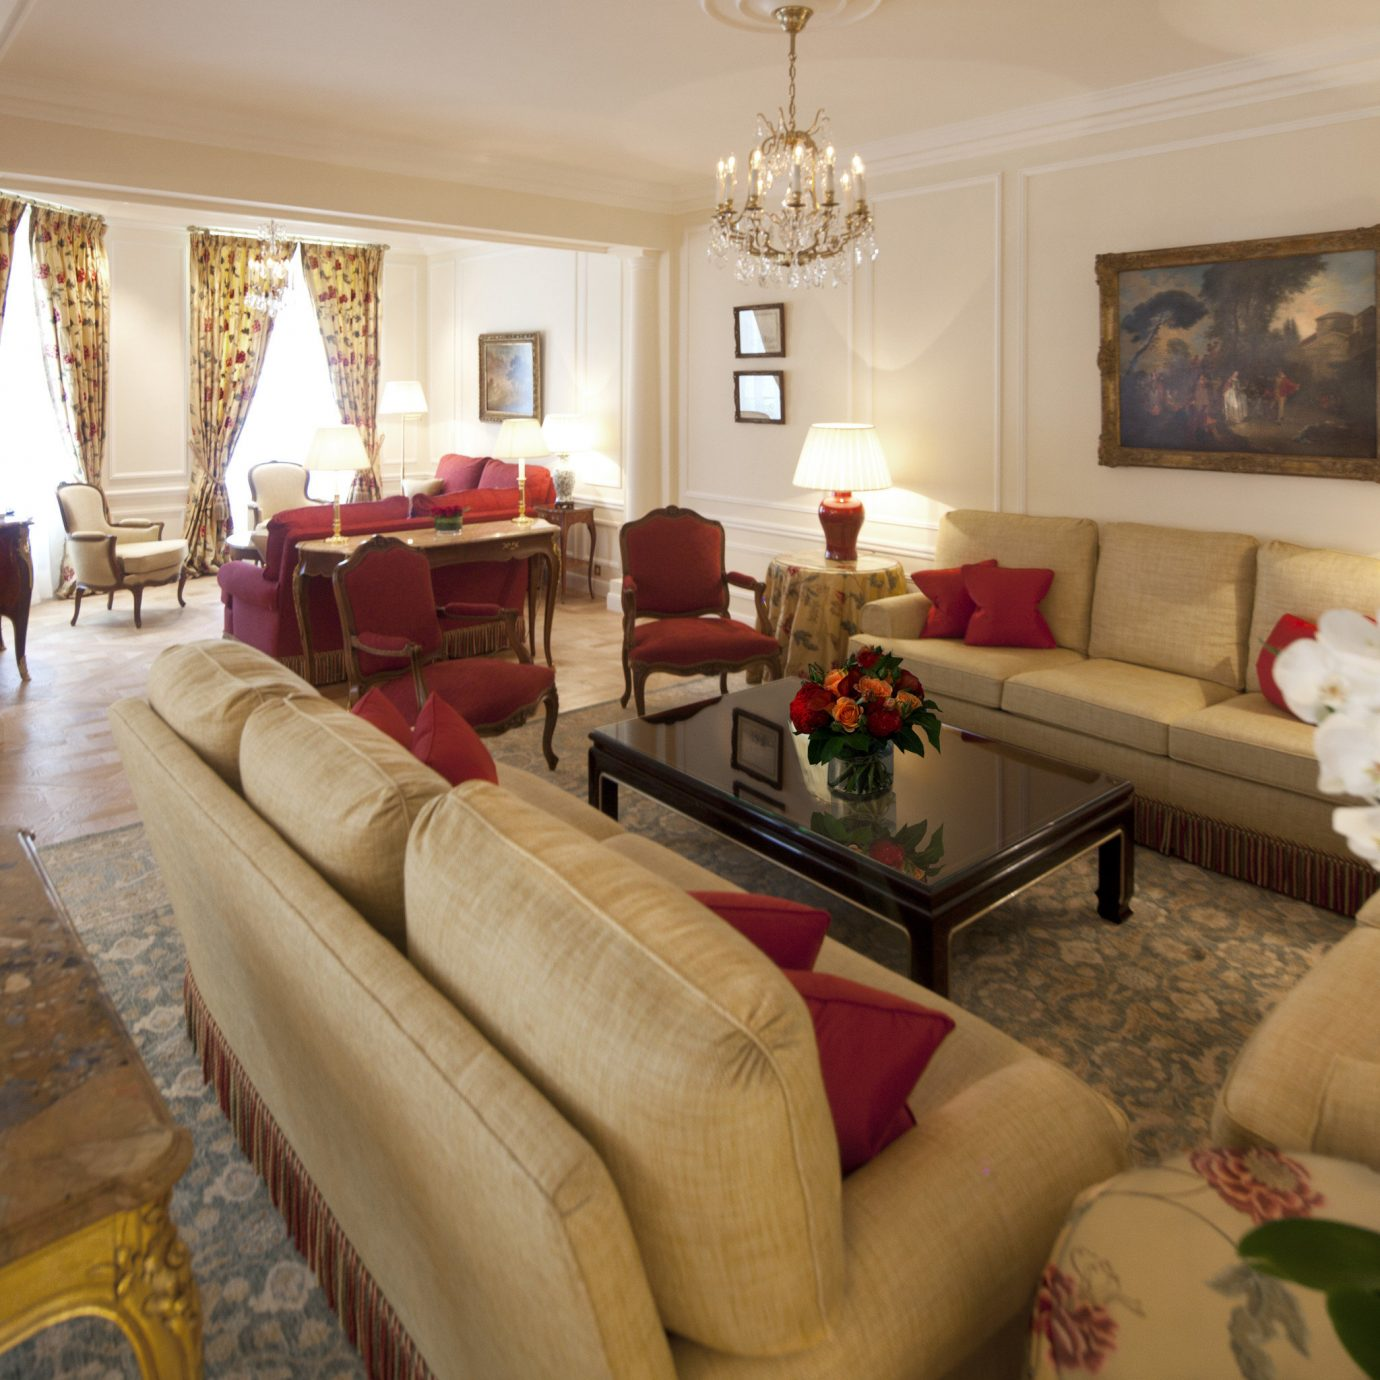 France Hotels Luxury Travel Paris sofa living room property home Suite flooring house flat